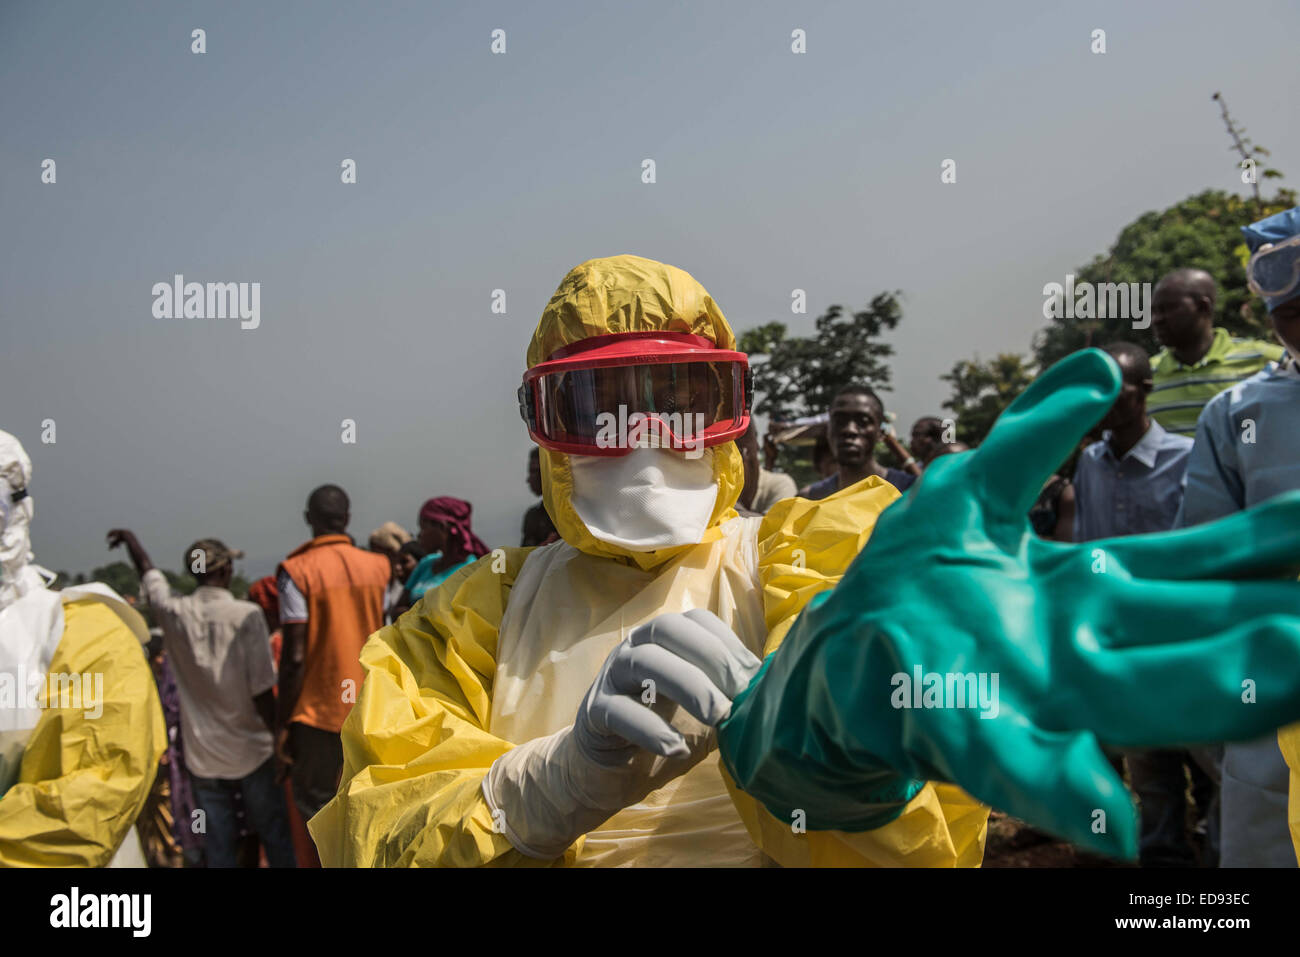 Fatmata Barrie preparing to enter the house of suspected Ebola victim in Melon st, Freetown. Unsafe burials are - Stock Image